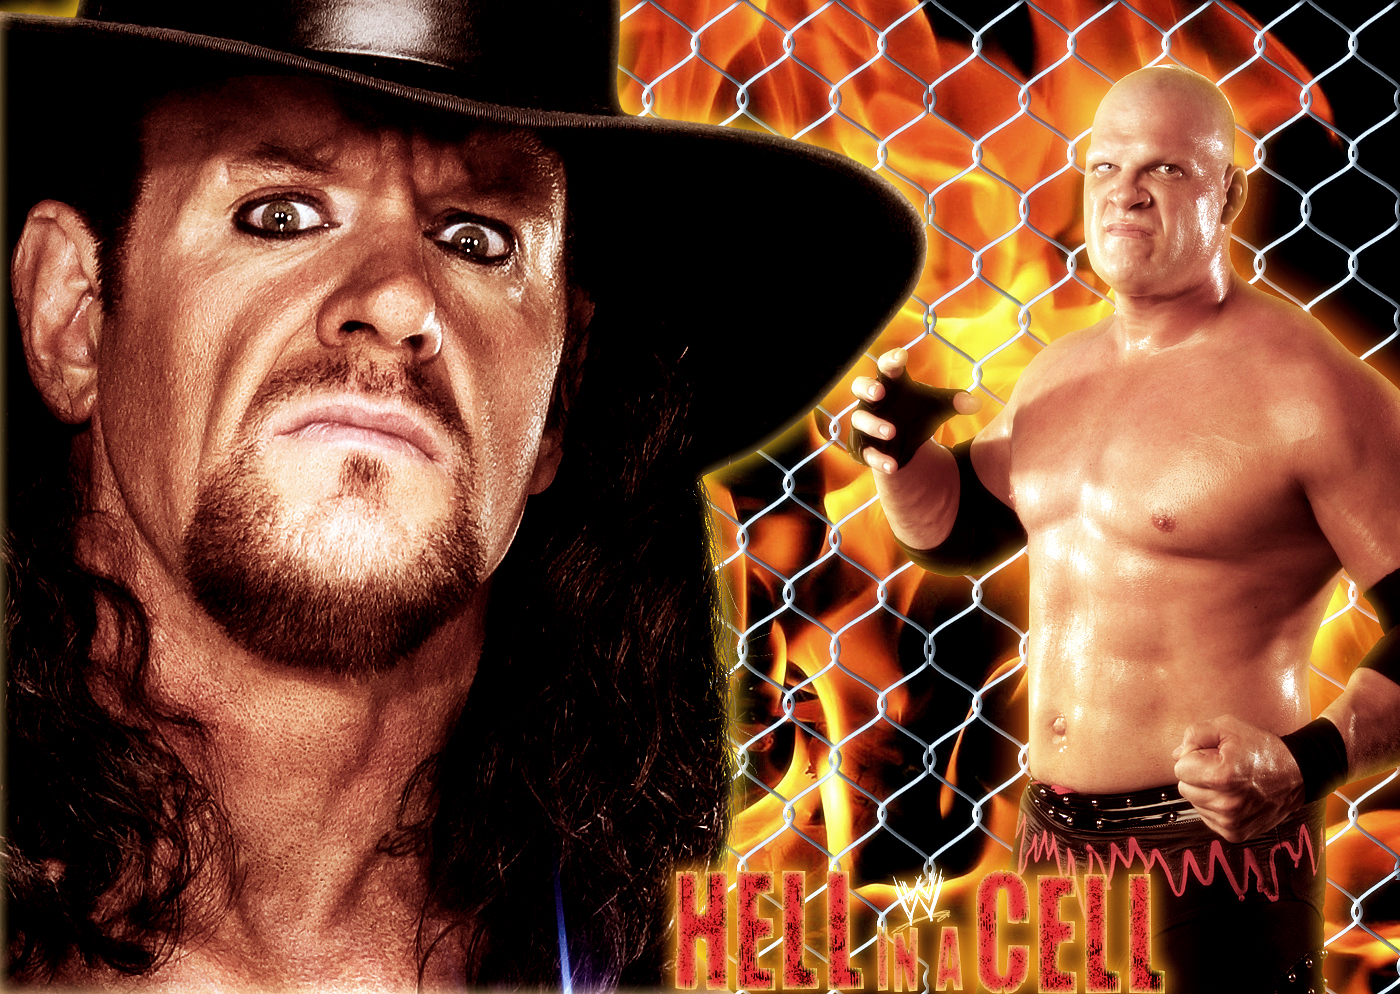 wwe hell in cell 2013 wallpapers wrestling and wrestlers